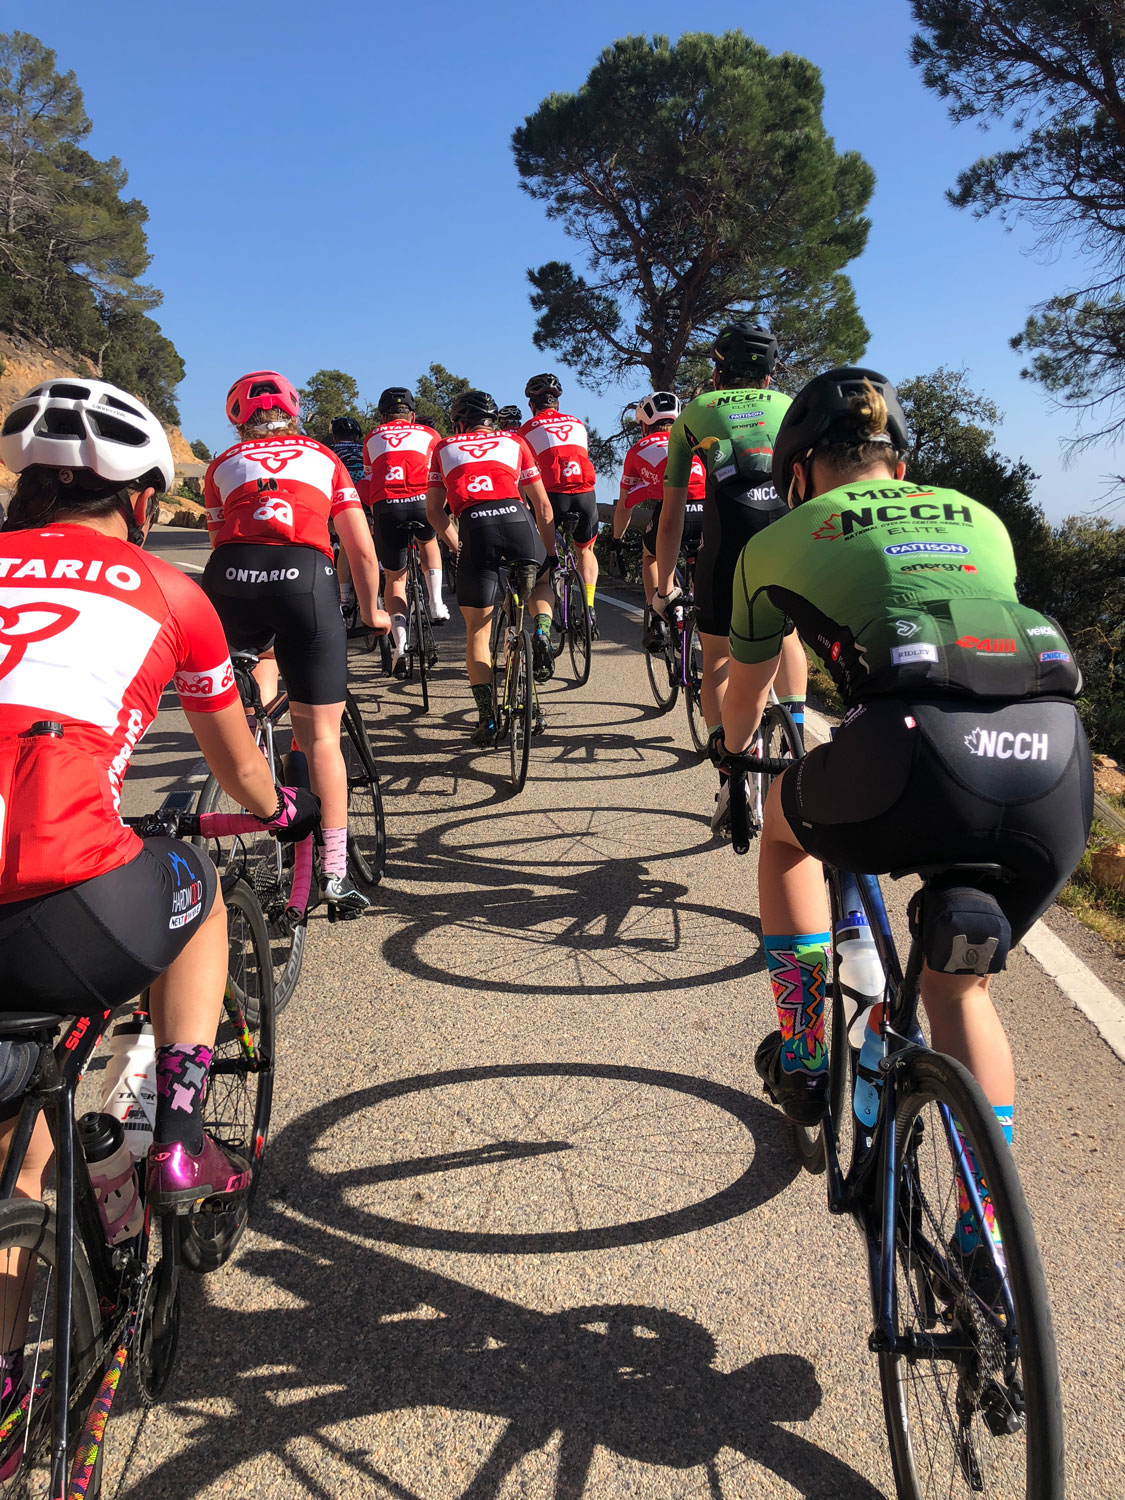 Peloton road ride in Girona, Spain